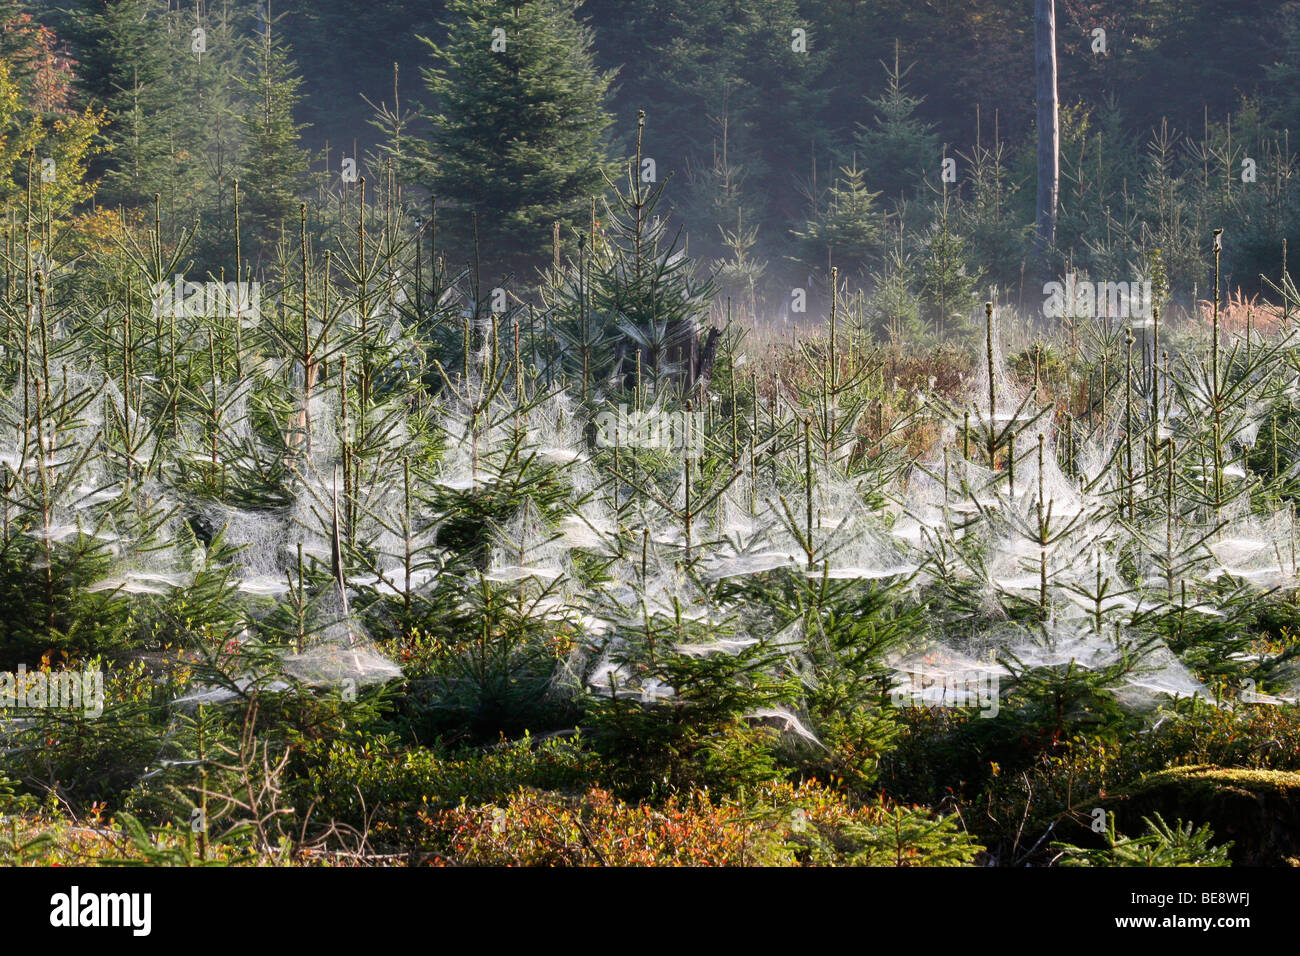 Spider webs on young spruces, Indian summer, Allgaeu, Bavaria, Germany, Europe - Stock Image